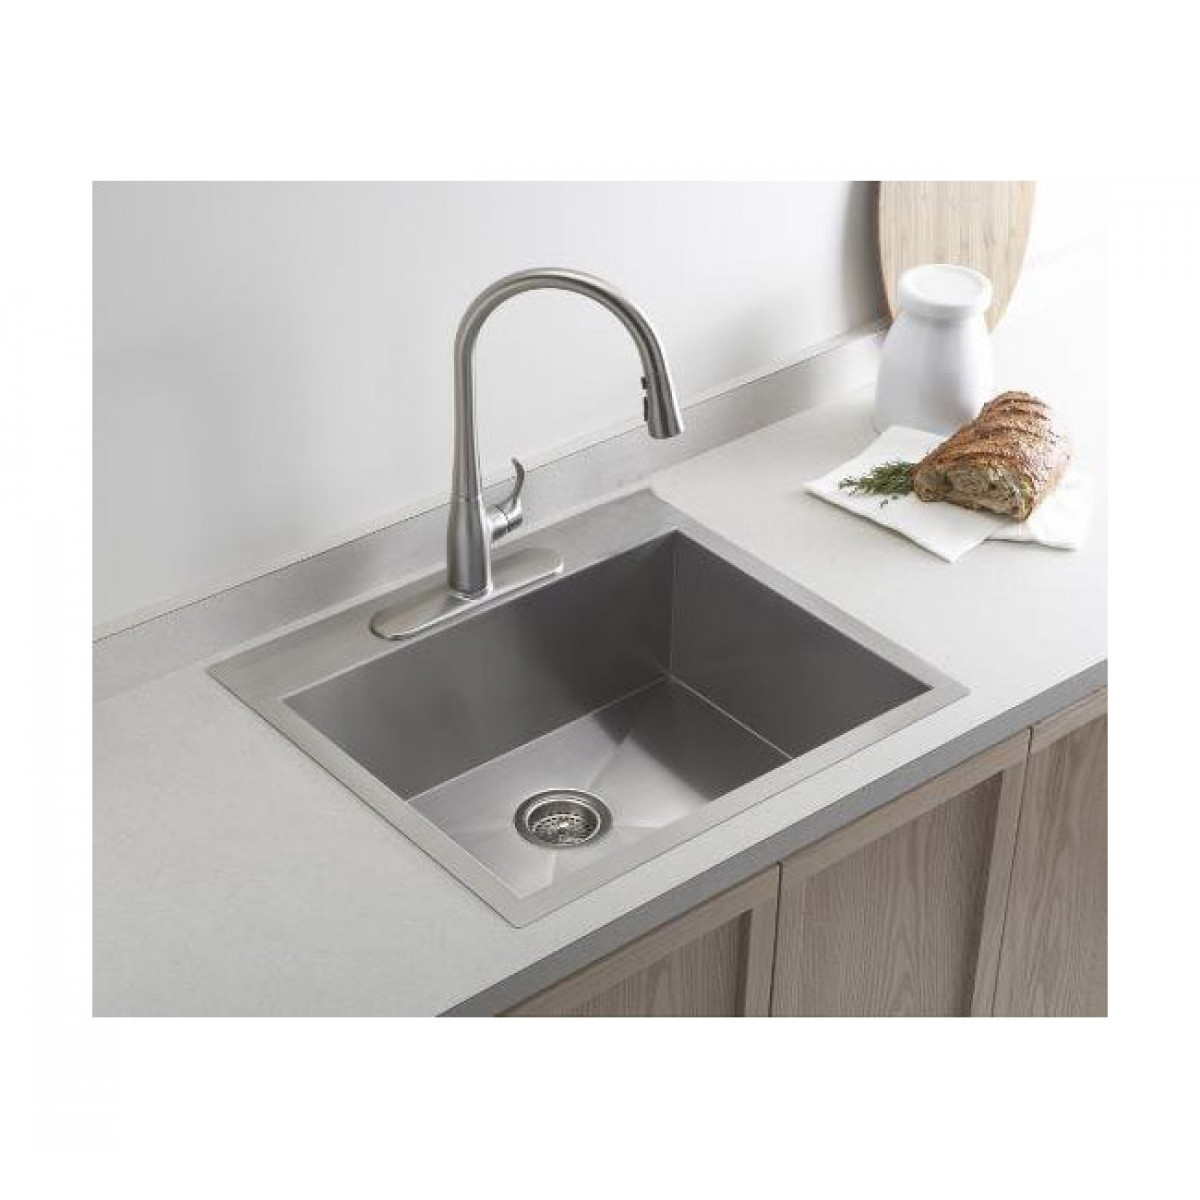 Best Kitchen Sink: 19 Inch Top-Mount / Drop-In Stainless Steel Single Bowl